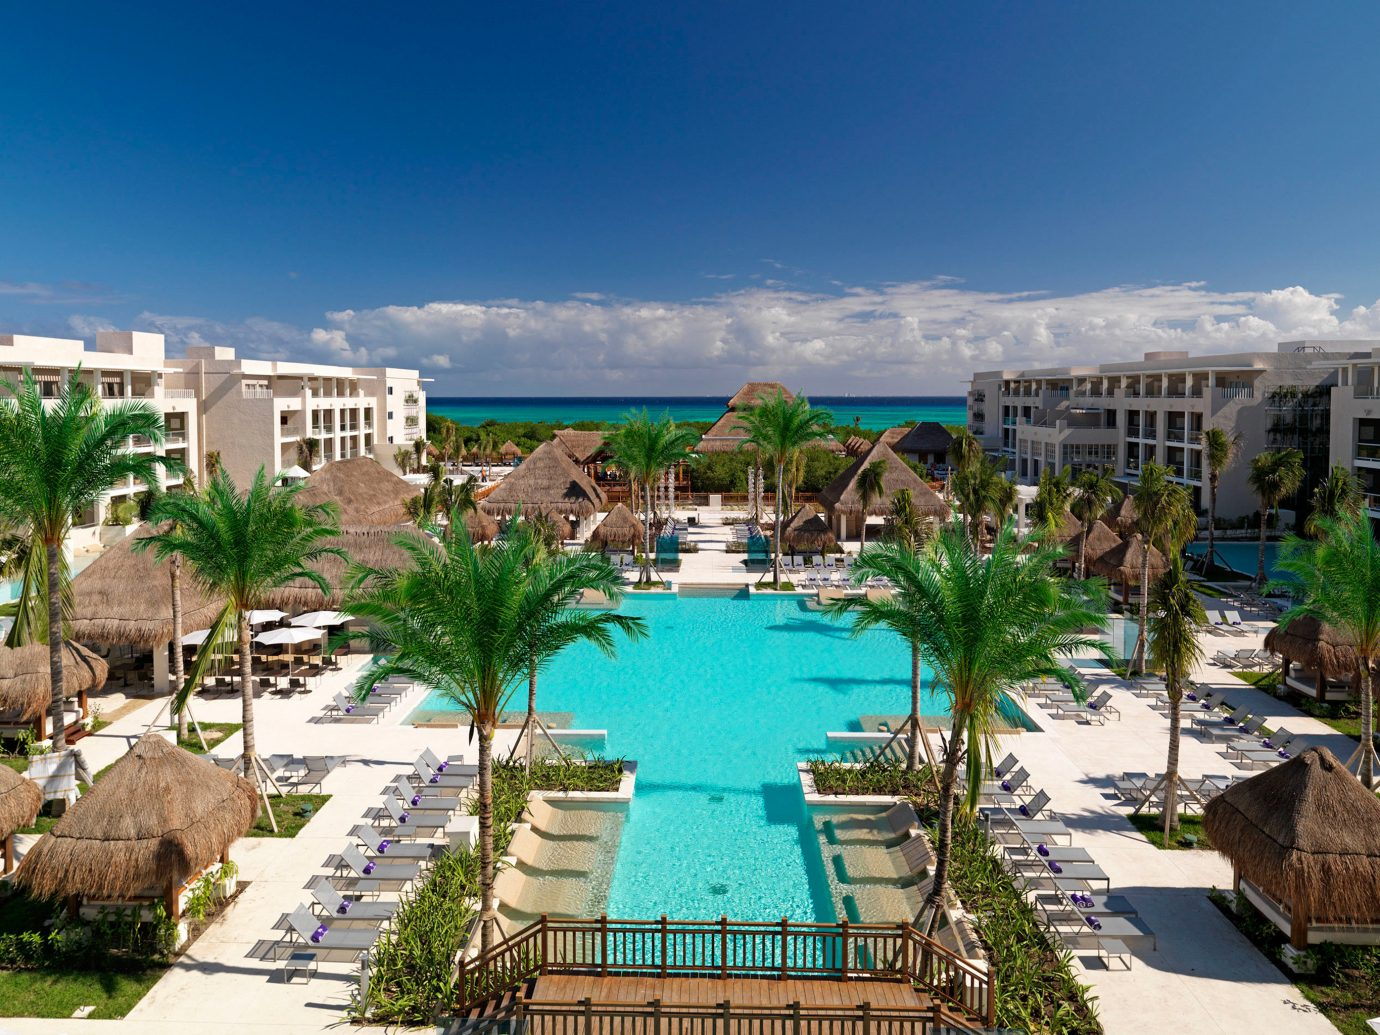 Grounds Hotels Island Pool outdoor building sky Resort leisure property swimming pool condominium marina vacation estate resort town dock real estate Water park bay Garden several